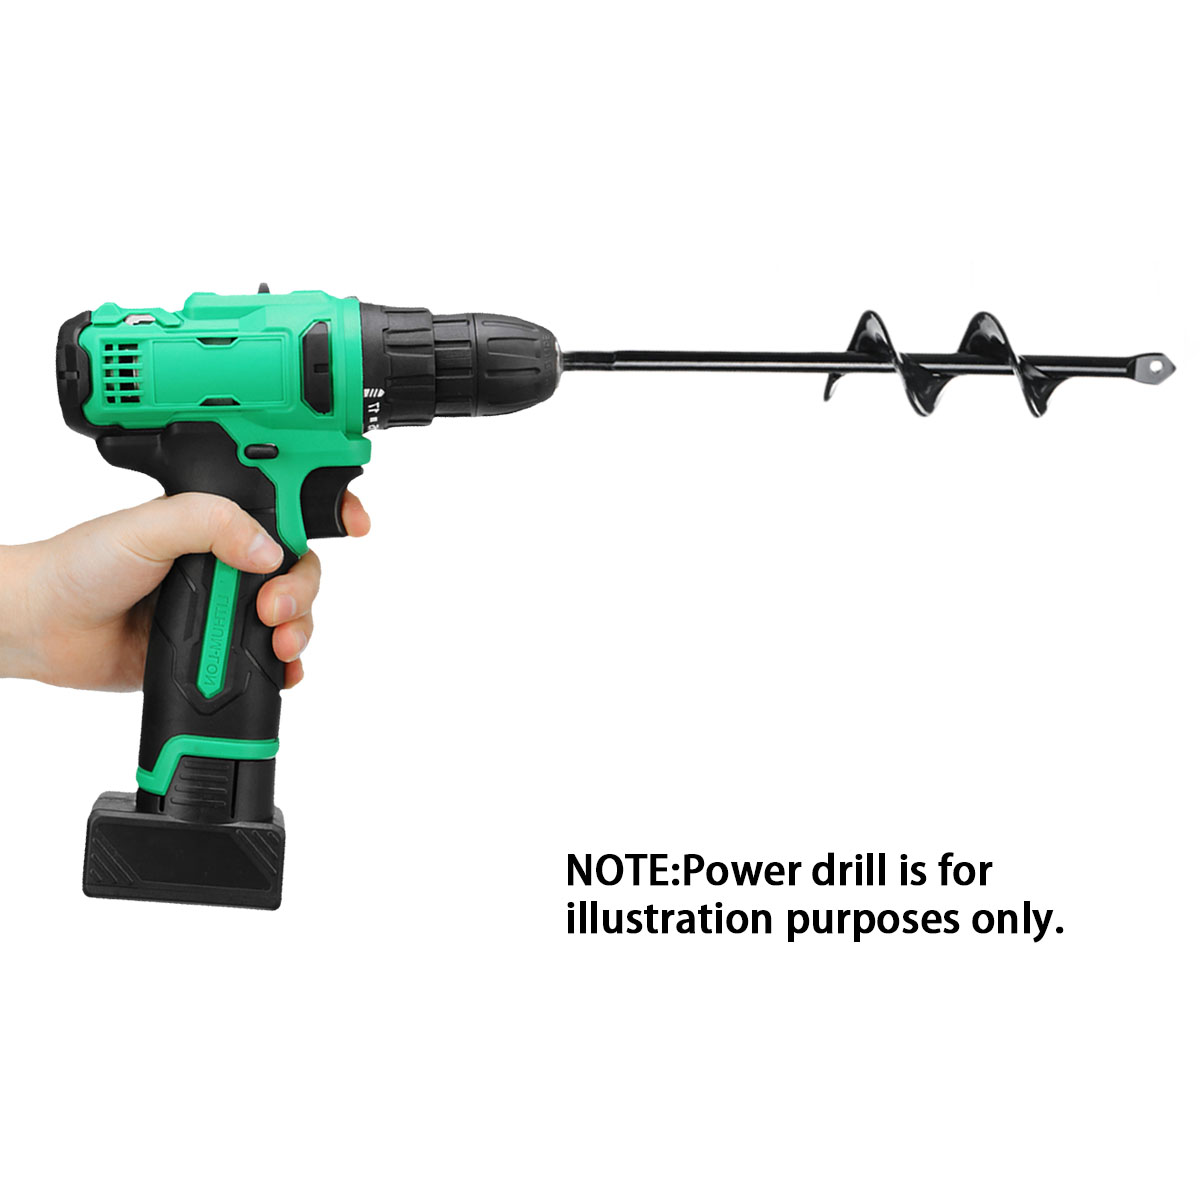 Power Drill - Earth Auger Hole Digger Tool Garden Planting Machine Drill Bit Fence Borer Post Hole Digger